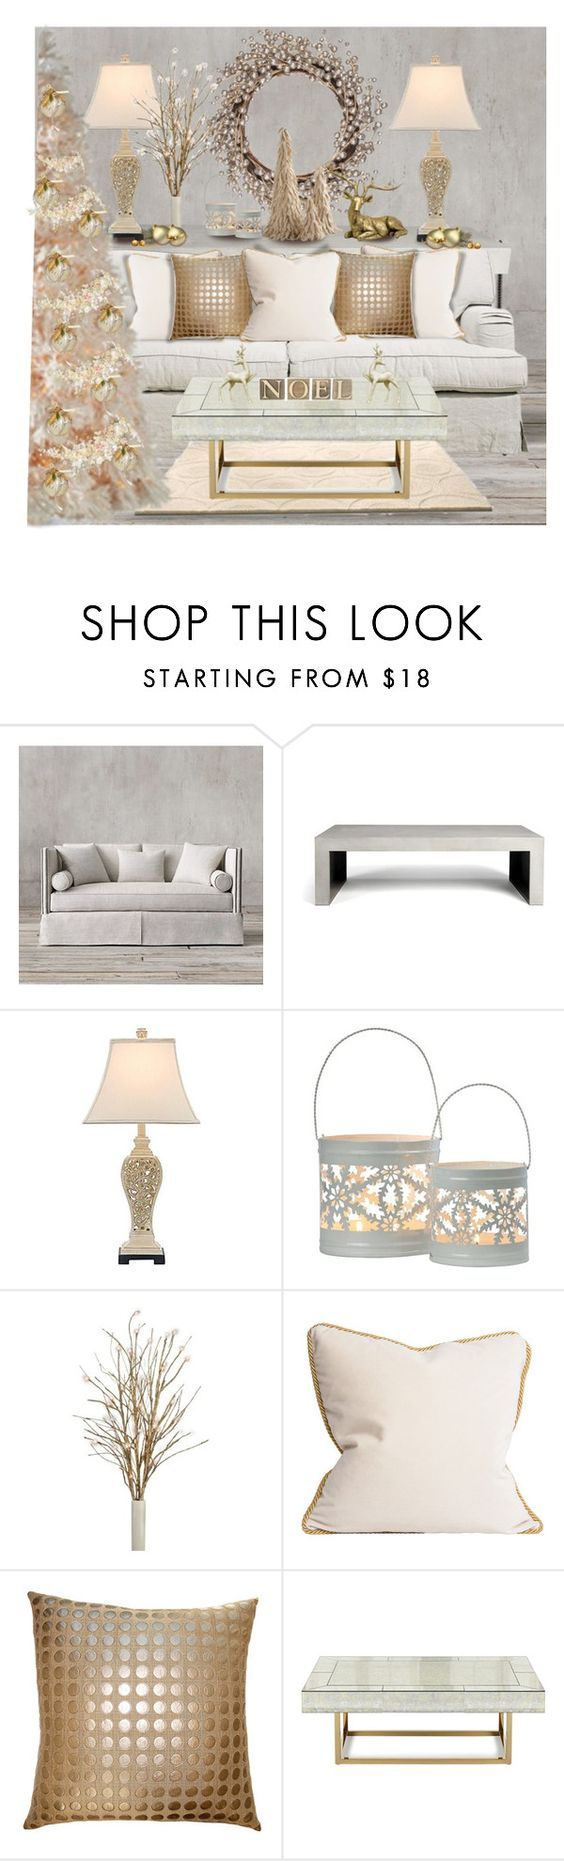 """""""Untitled #5163"""" by cassandra-cafone-wright ❤ liked on Polyvore featuring interior, interiors, interior design, home, home decor, interior decorating, Restoration Hardware, John Lewis, Squarefeathers and Jonathan Adler"""